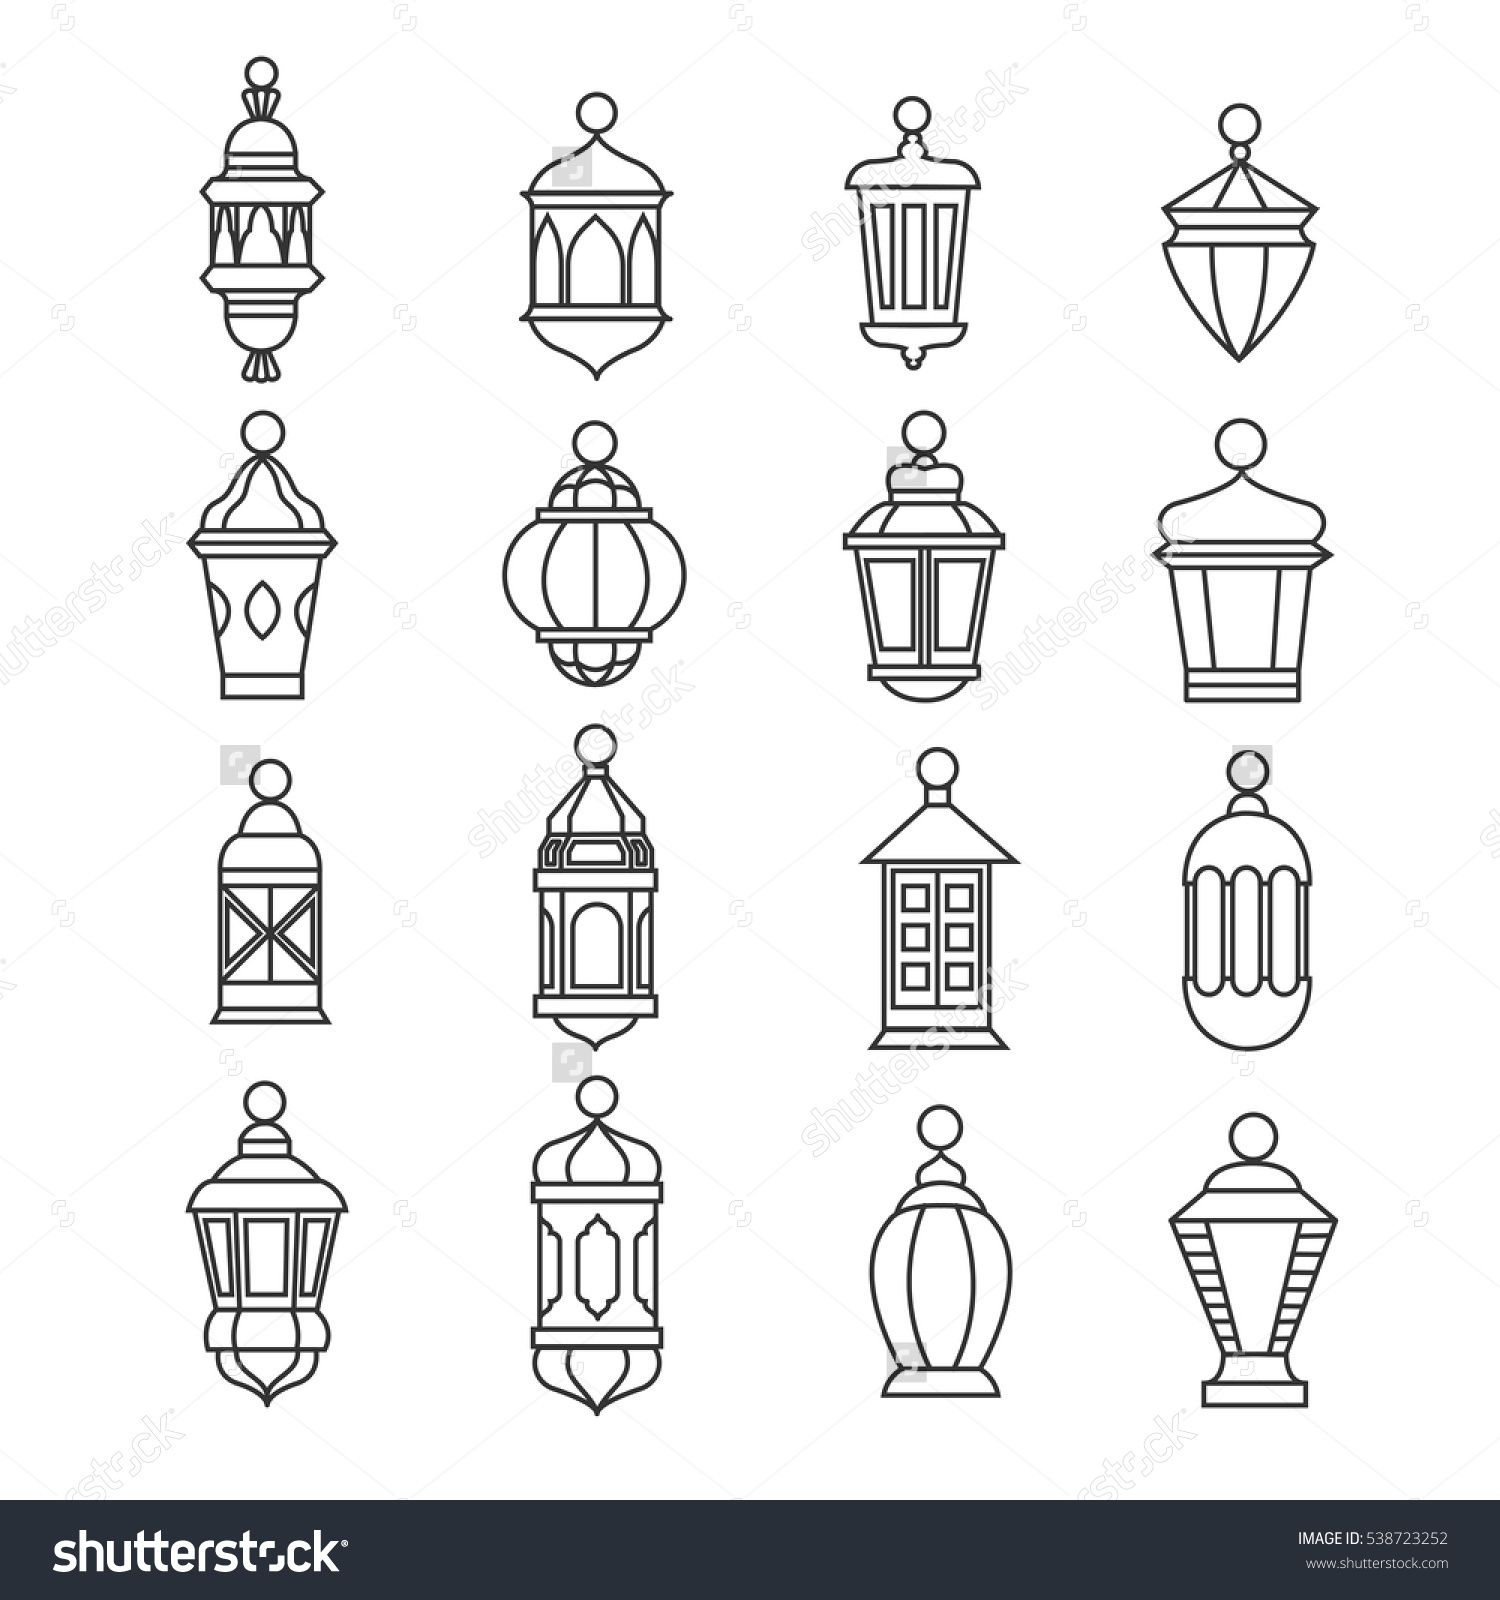 Ramadan Vintage Lantern Linear Icons Vector Muslim Antique Lamp Symbols Old Oil Classic Illustration